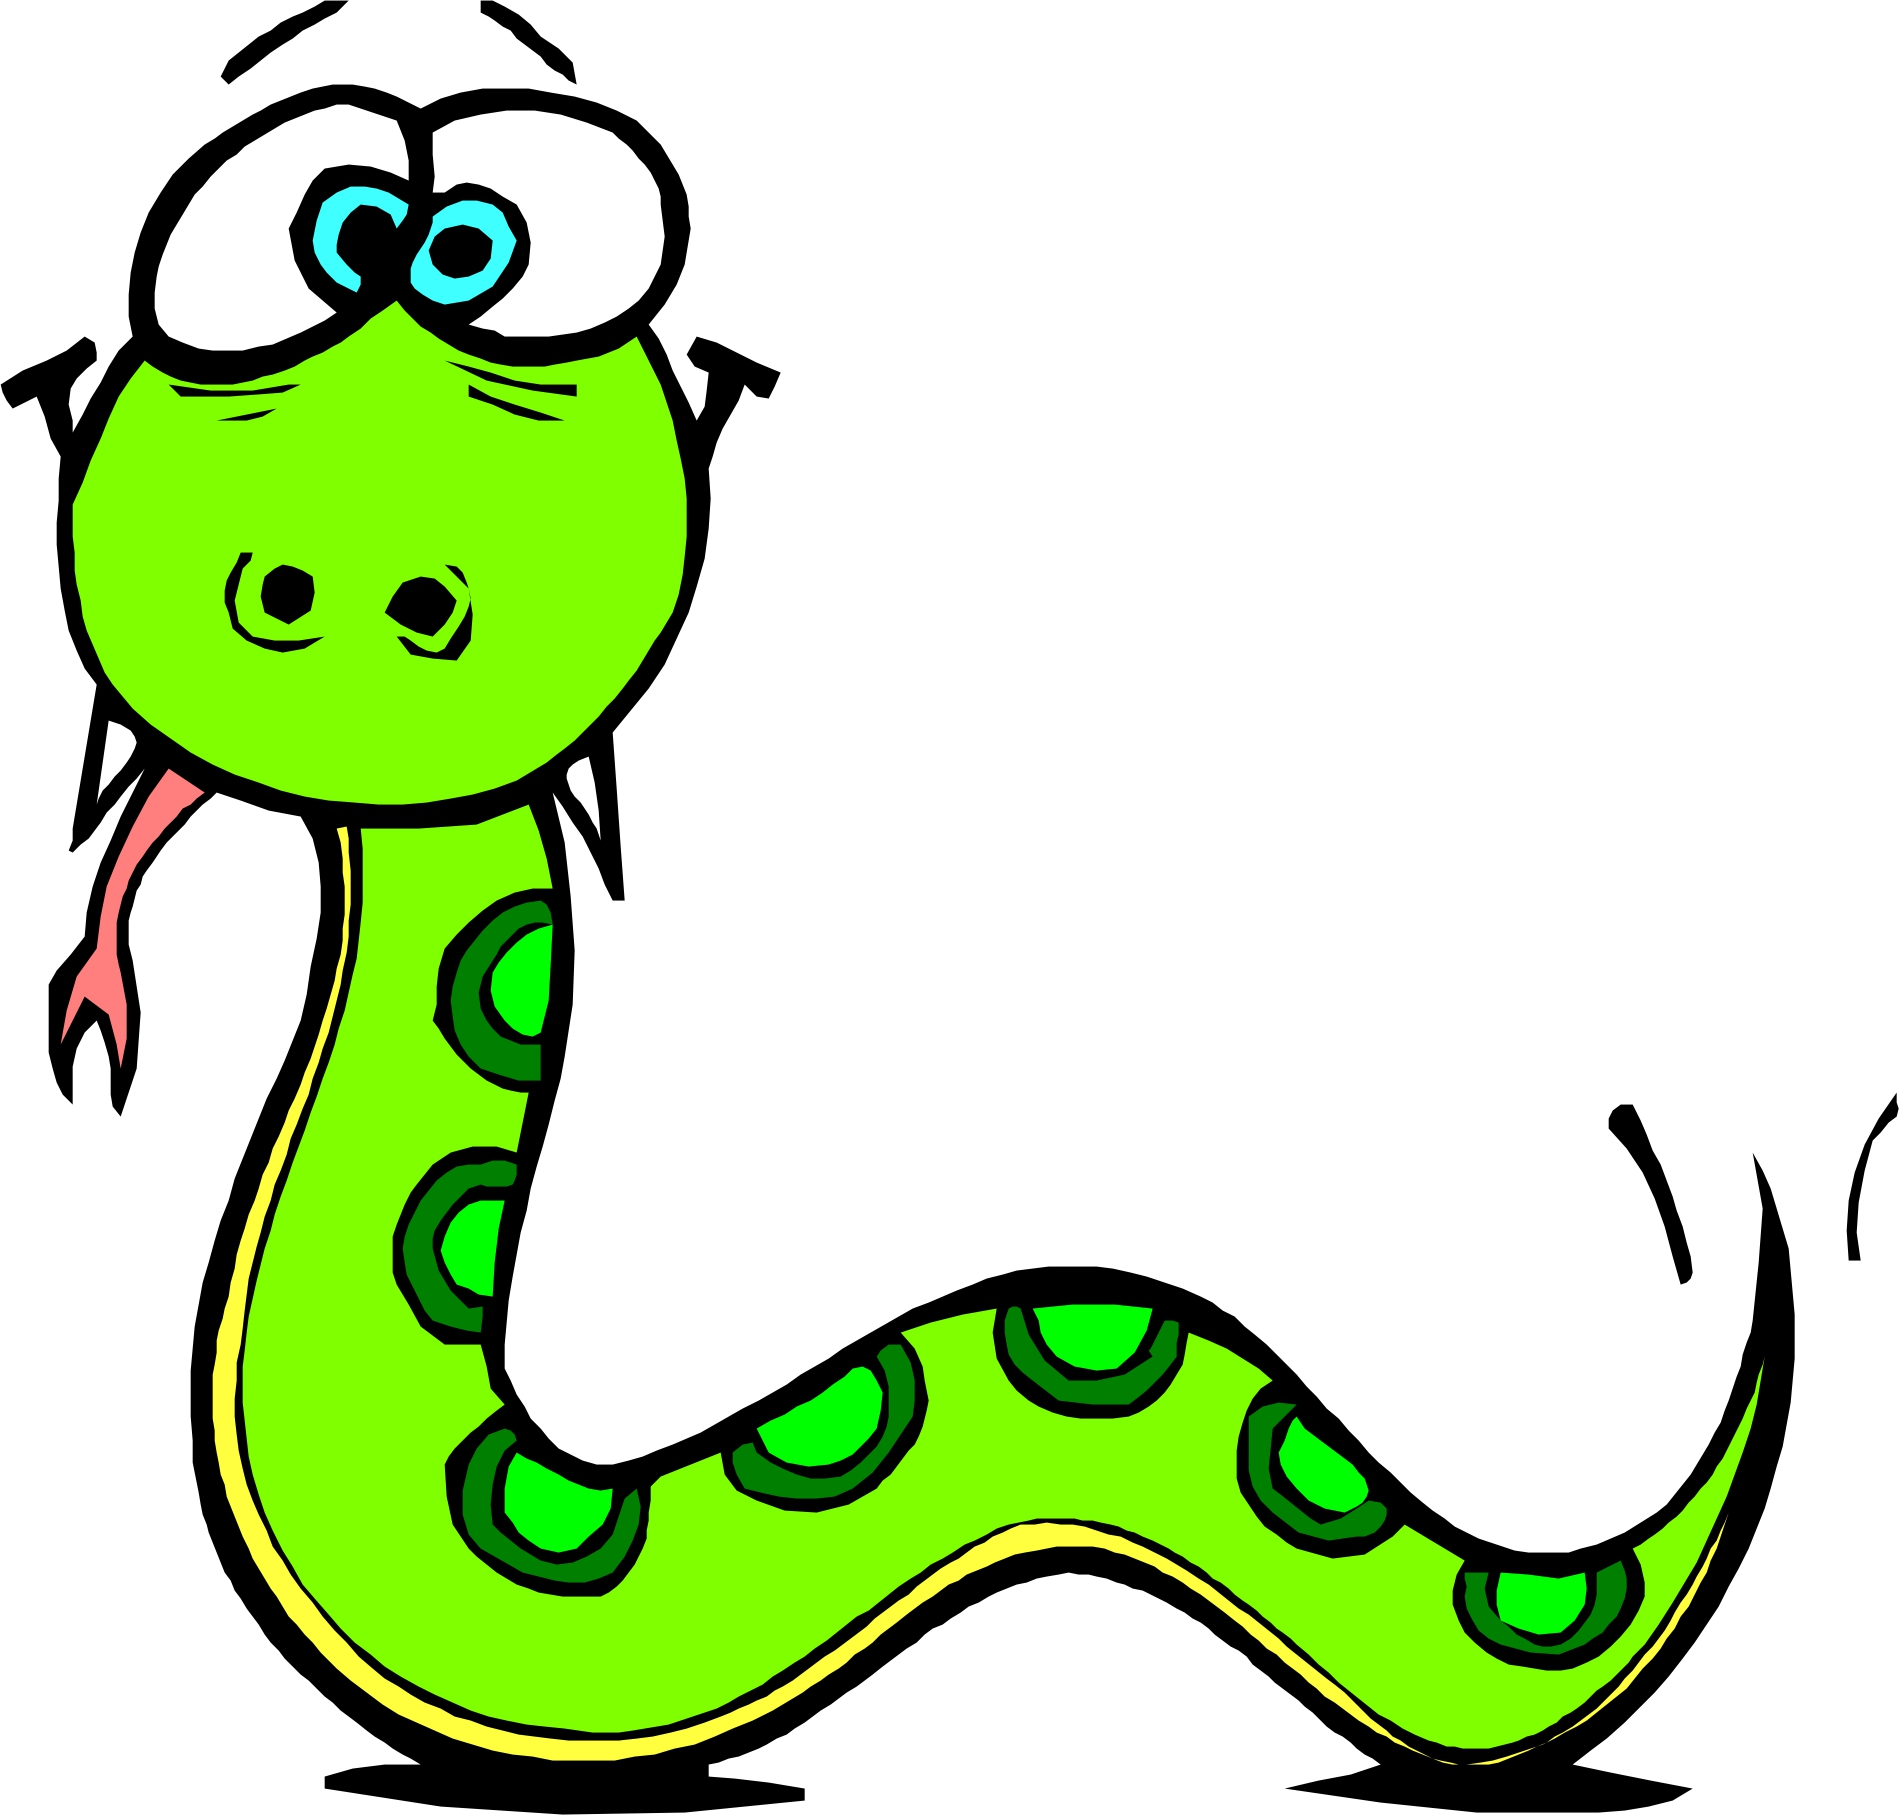 Free Cartoon Snakes Pictures, Download Free Clip Art, Free Clip Art.